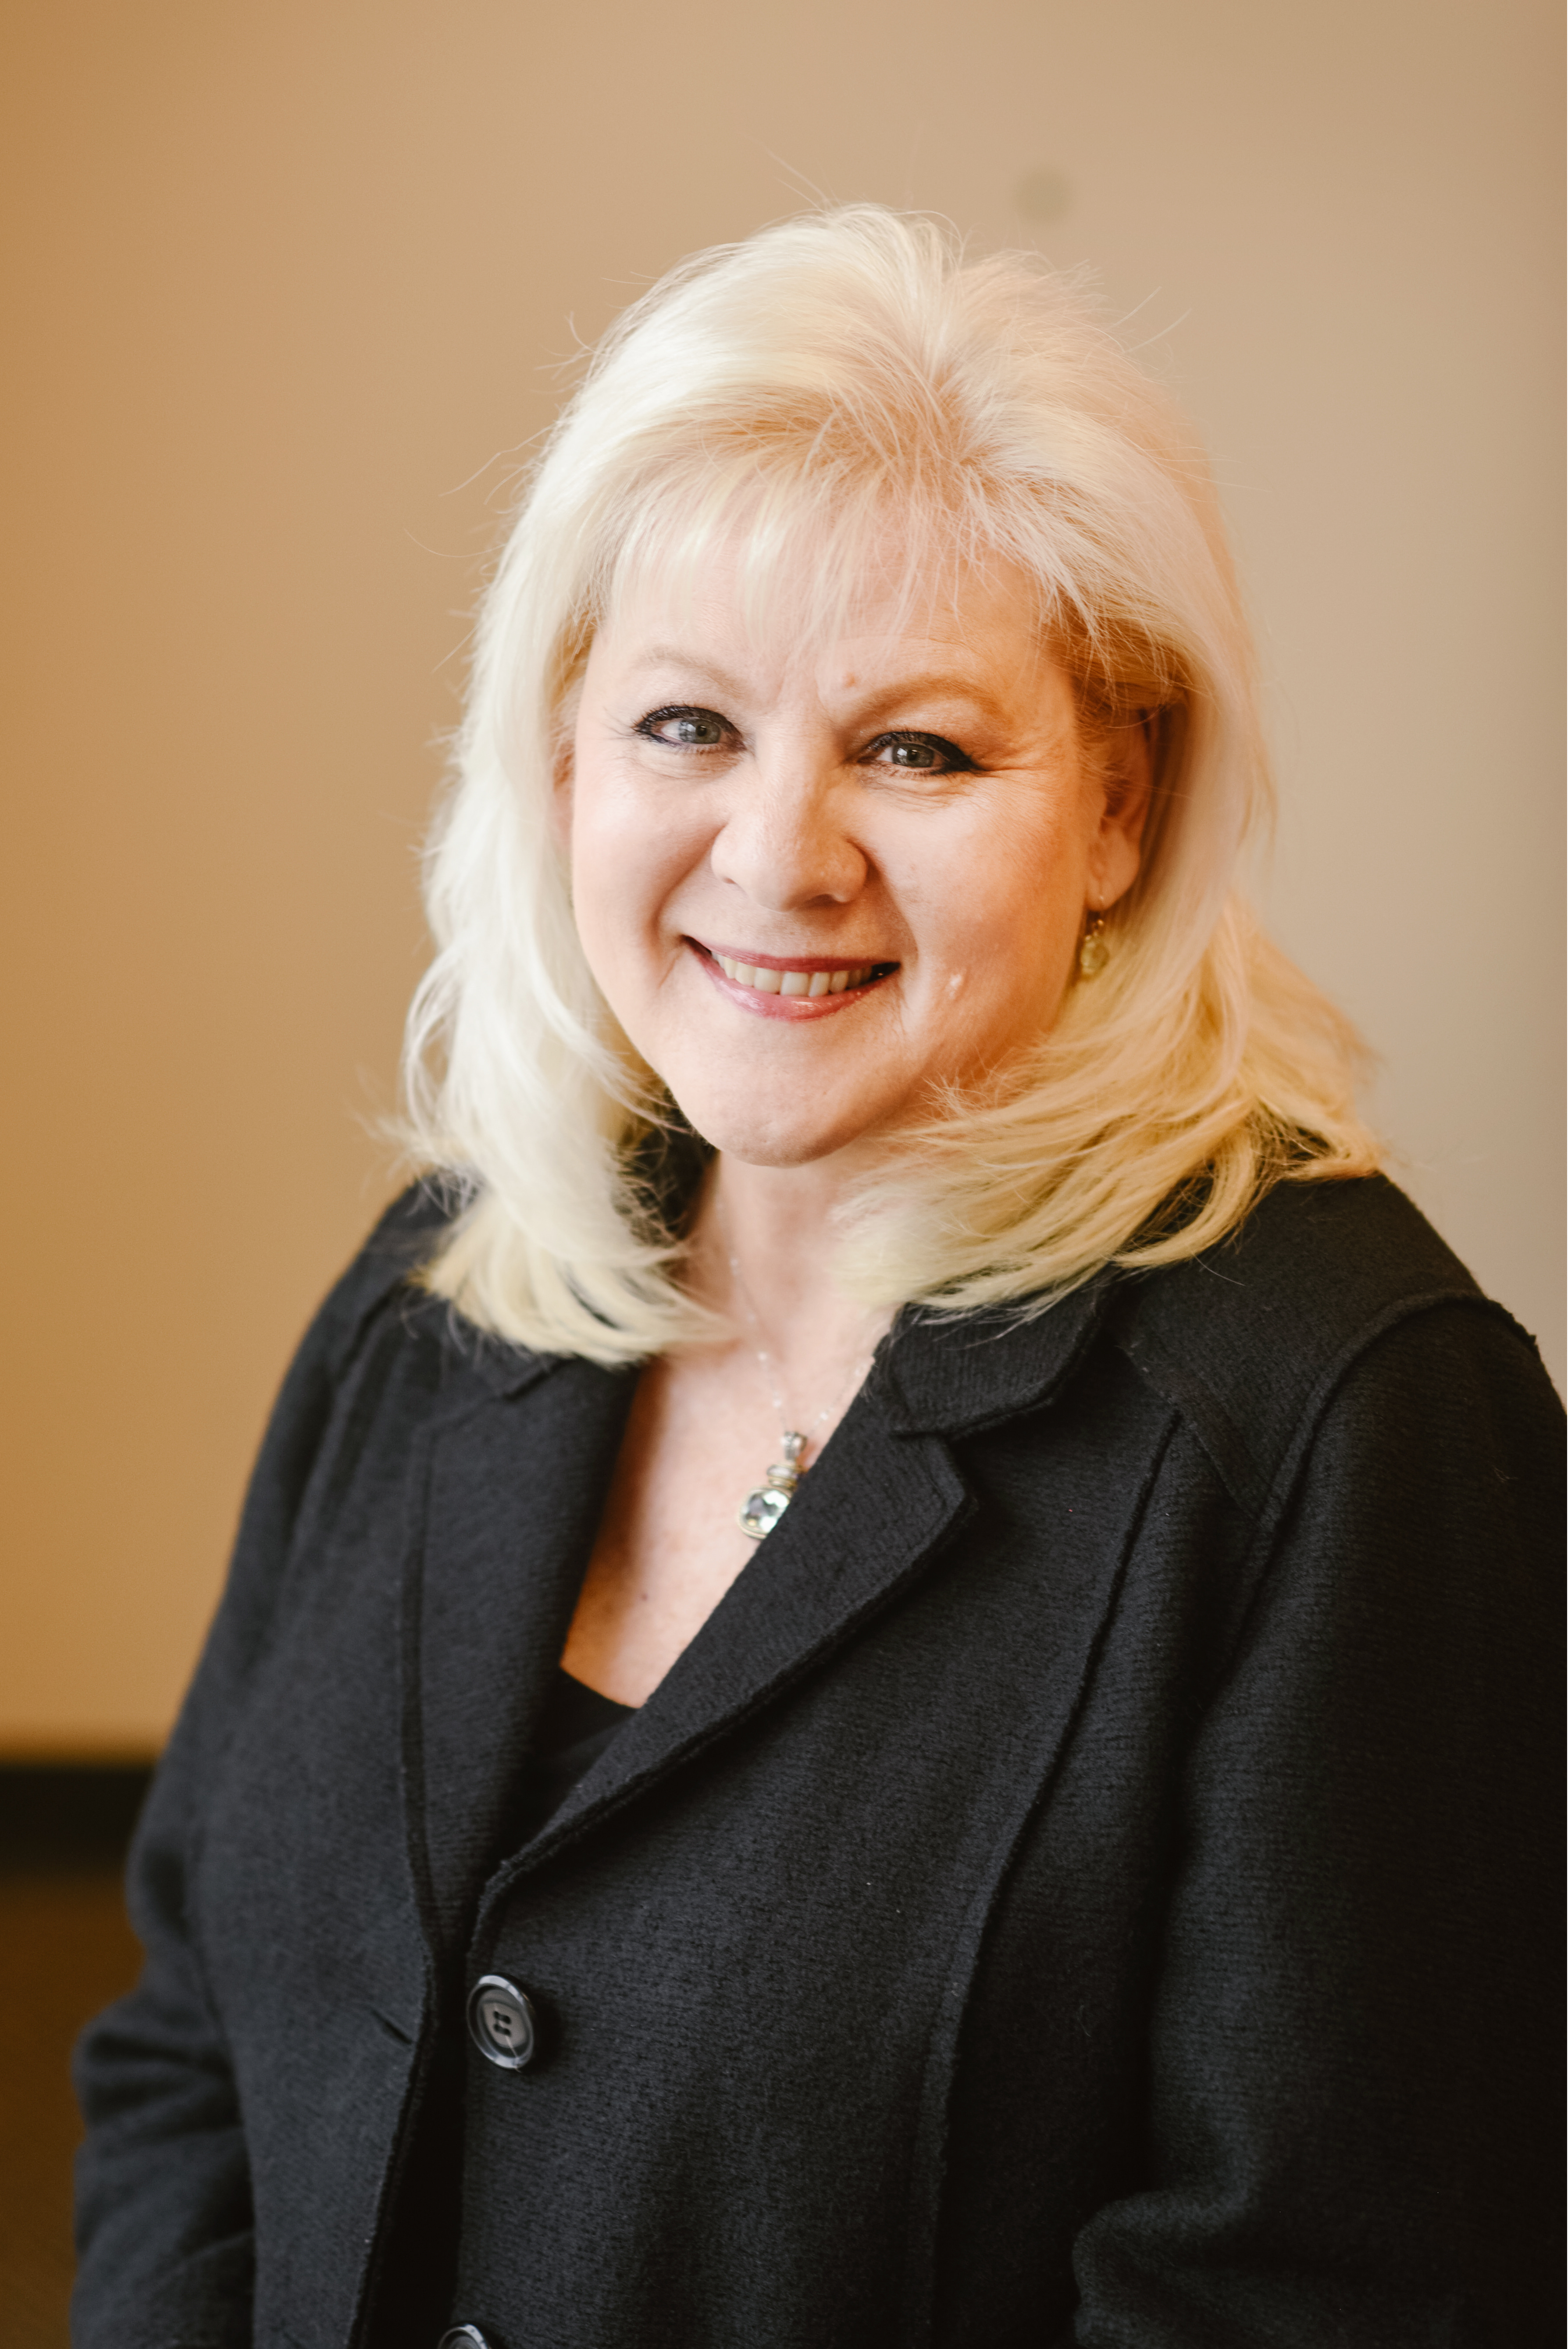 Fran Lovelace | Health and Life Insurance Agent | Summerfield, NC 27358